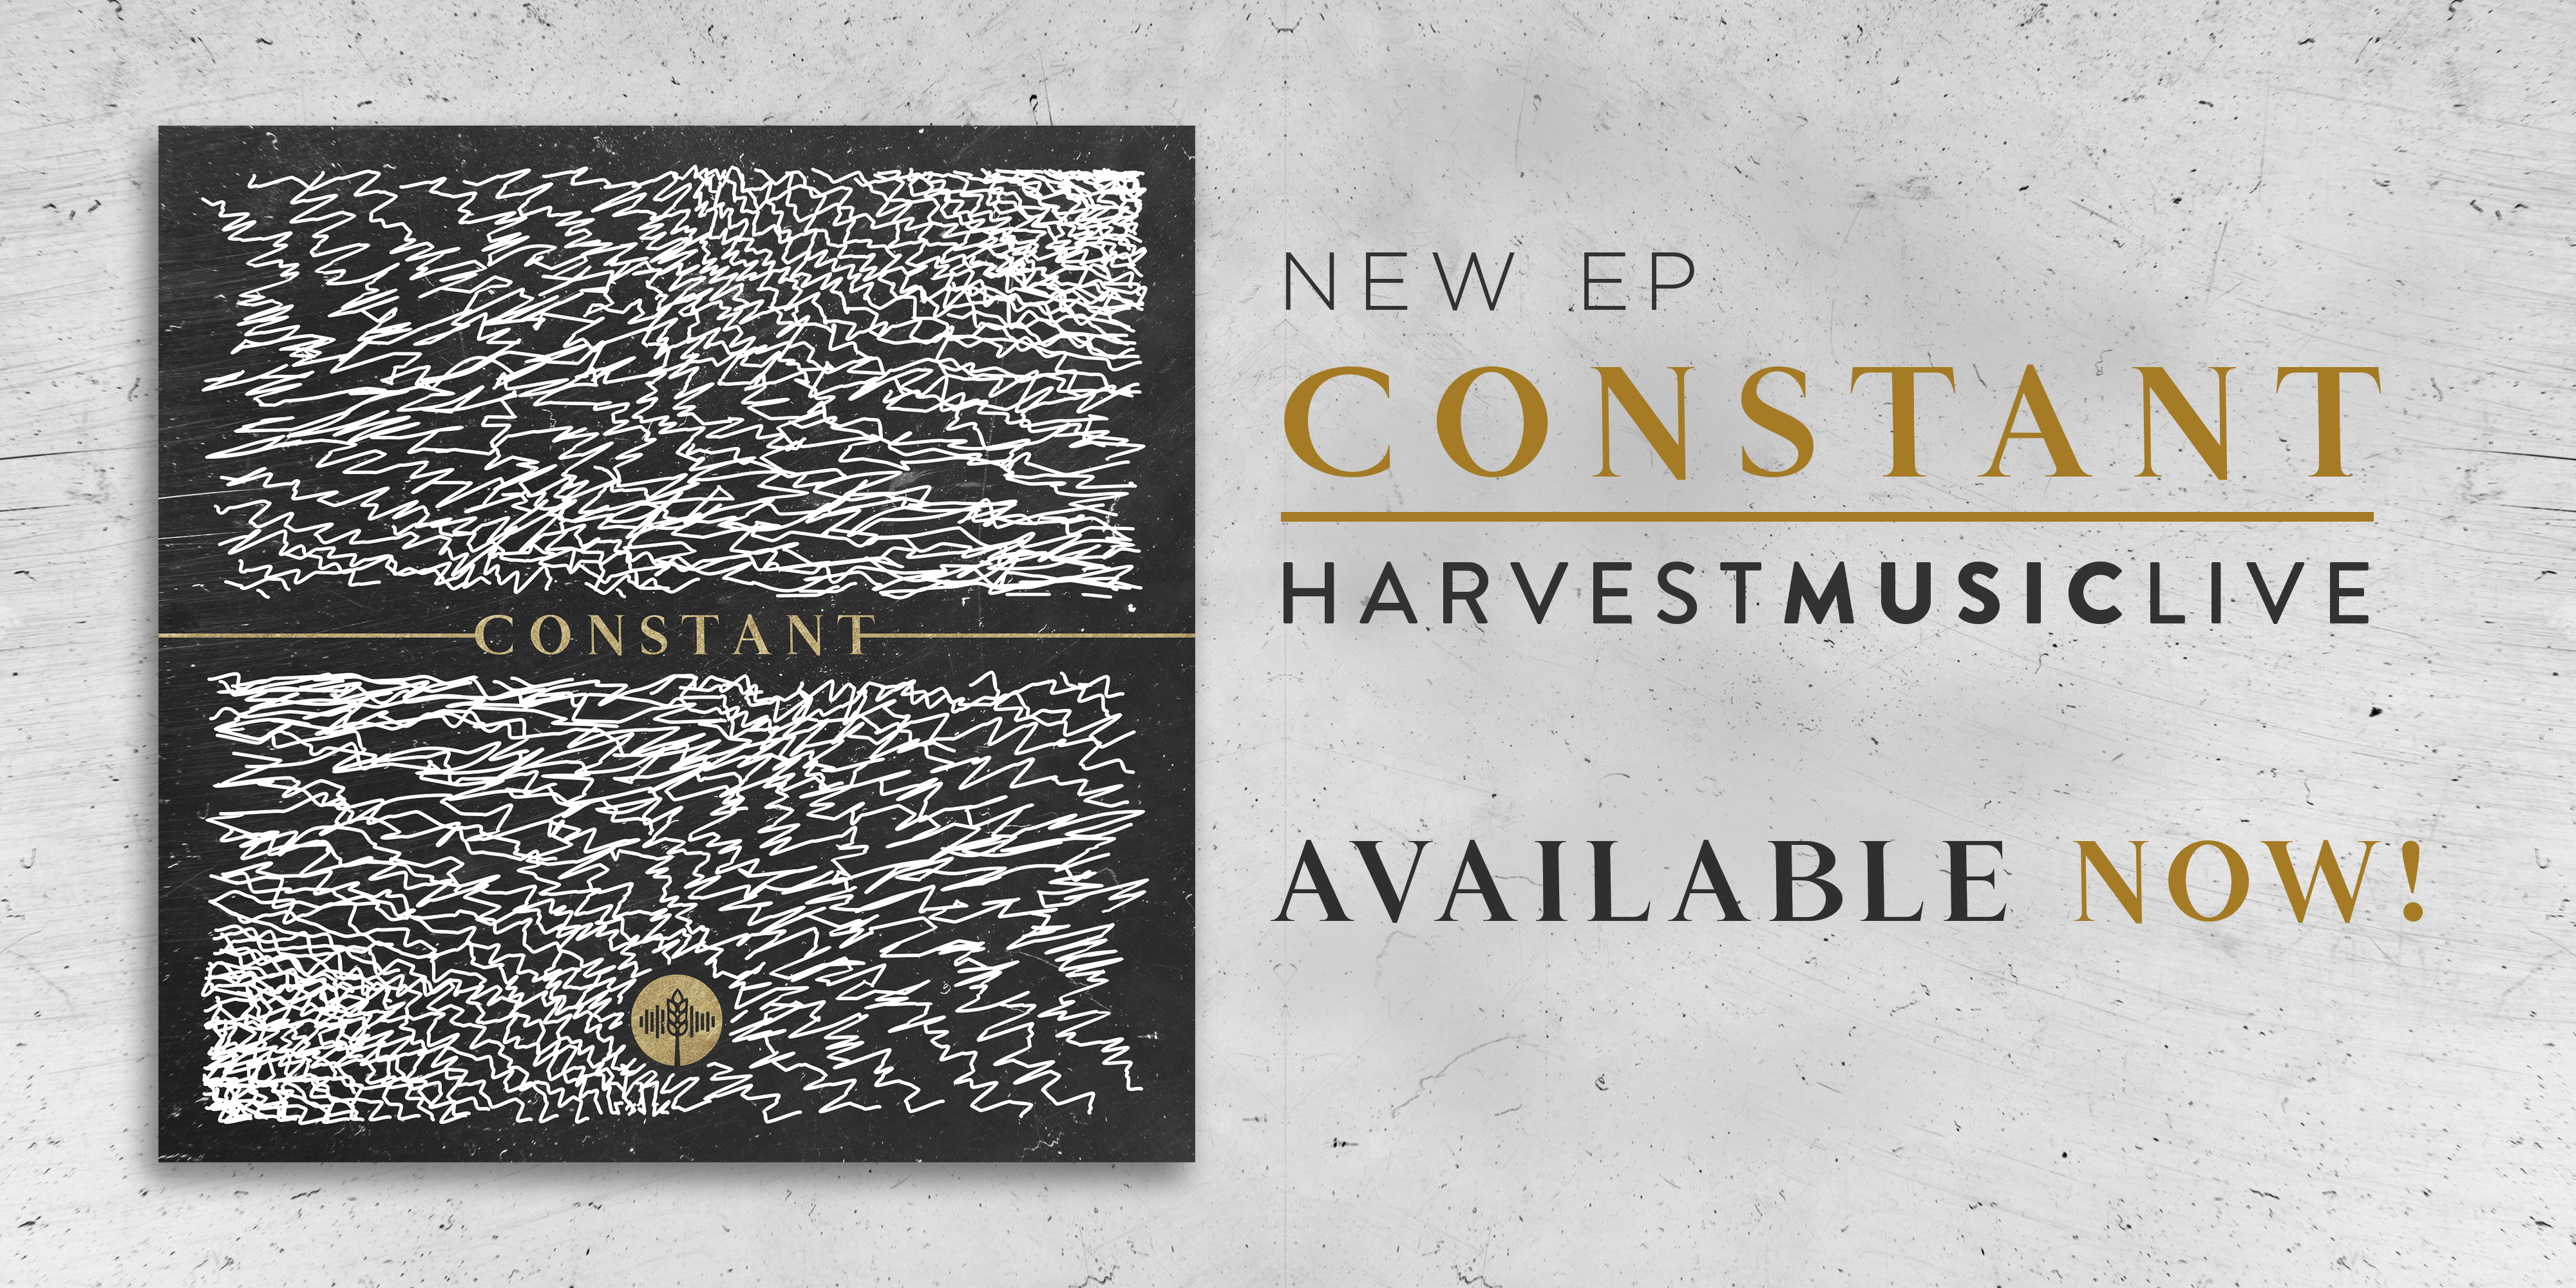 New EP Harvest Music Live Available Now